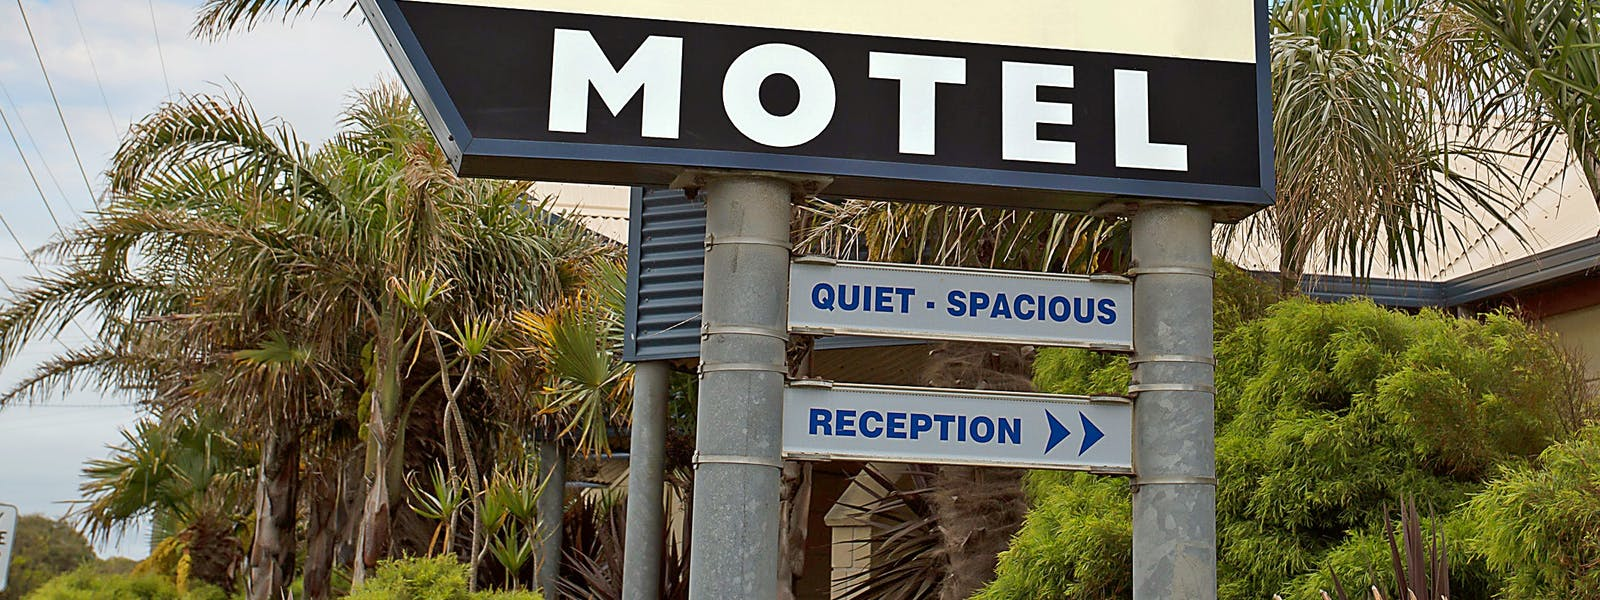 Portside Motel unique style design and sign